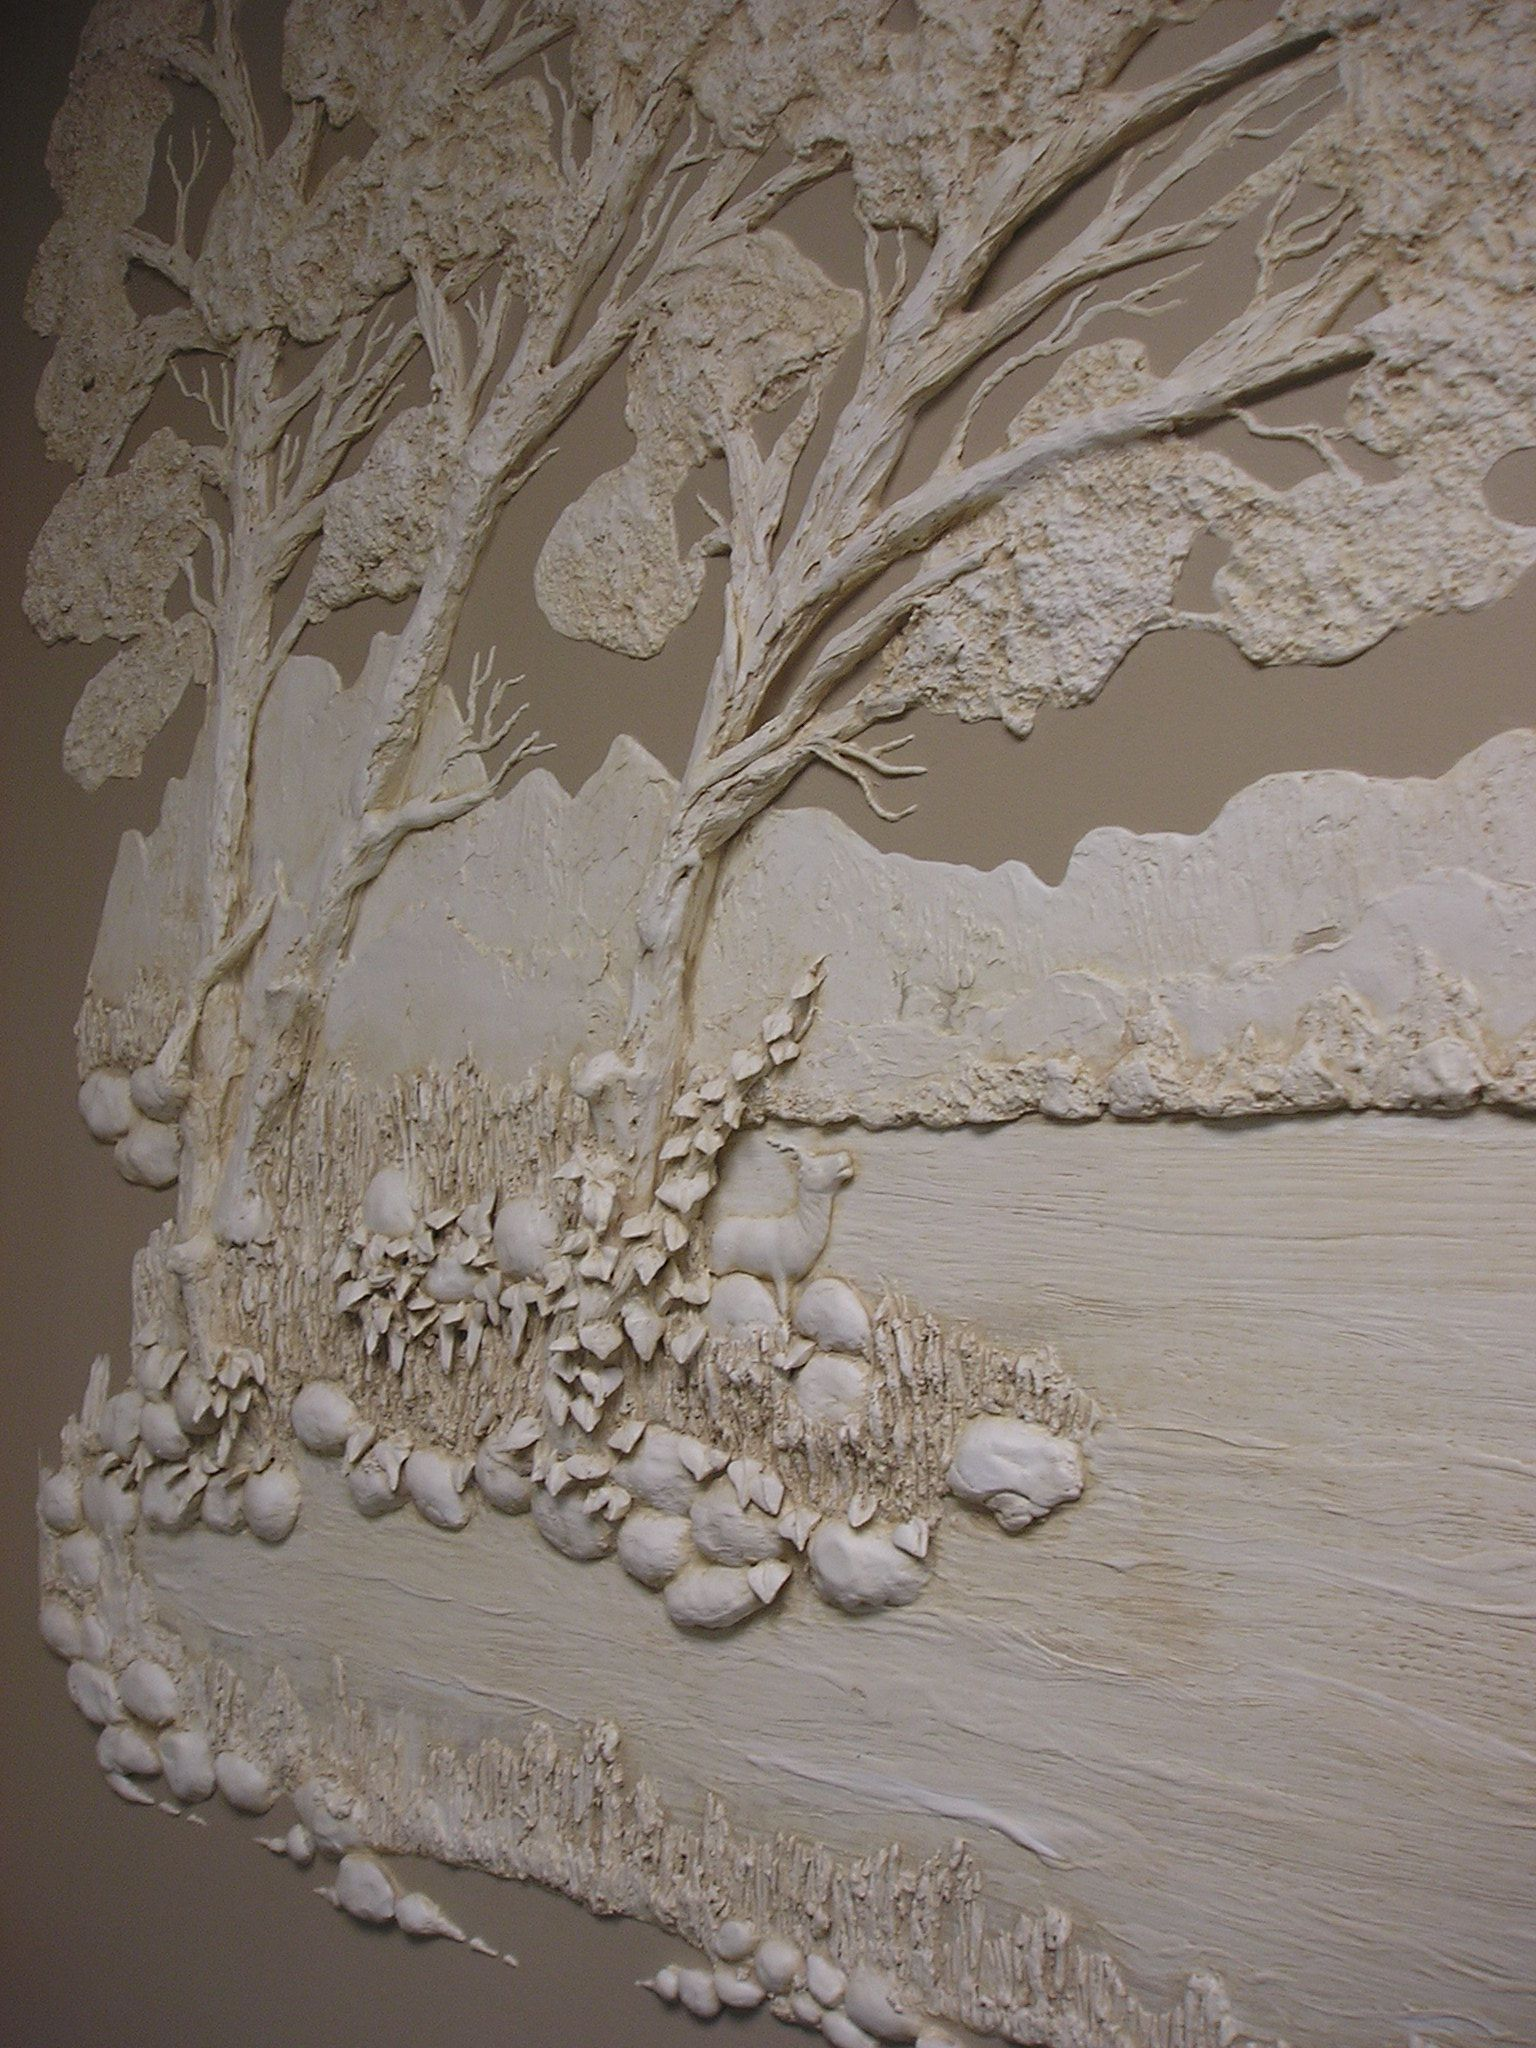 Architectural Relief Plaster High Relief Wall Sculpture Sculpted Wall Panel Sculpturesque Painting Sculpted Wa Plaster Wall Art Plaster Art Plaster Sculpture